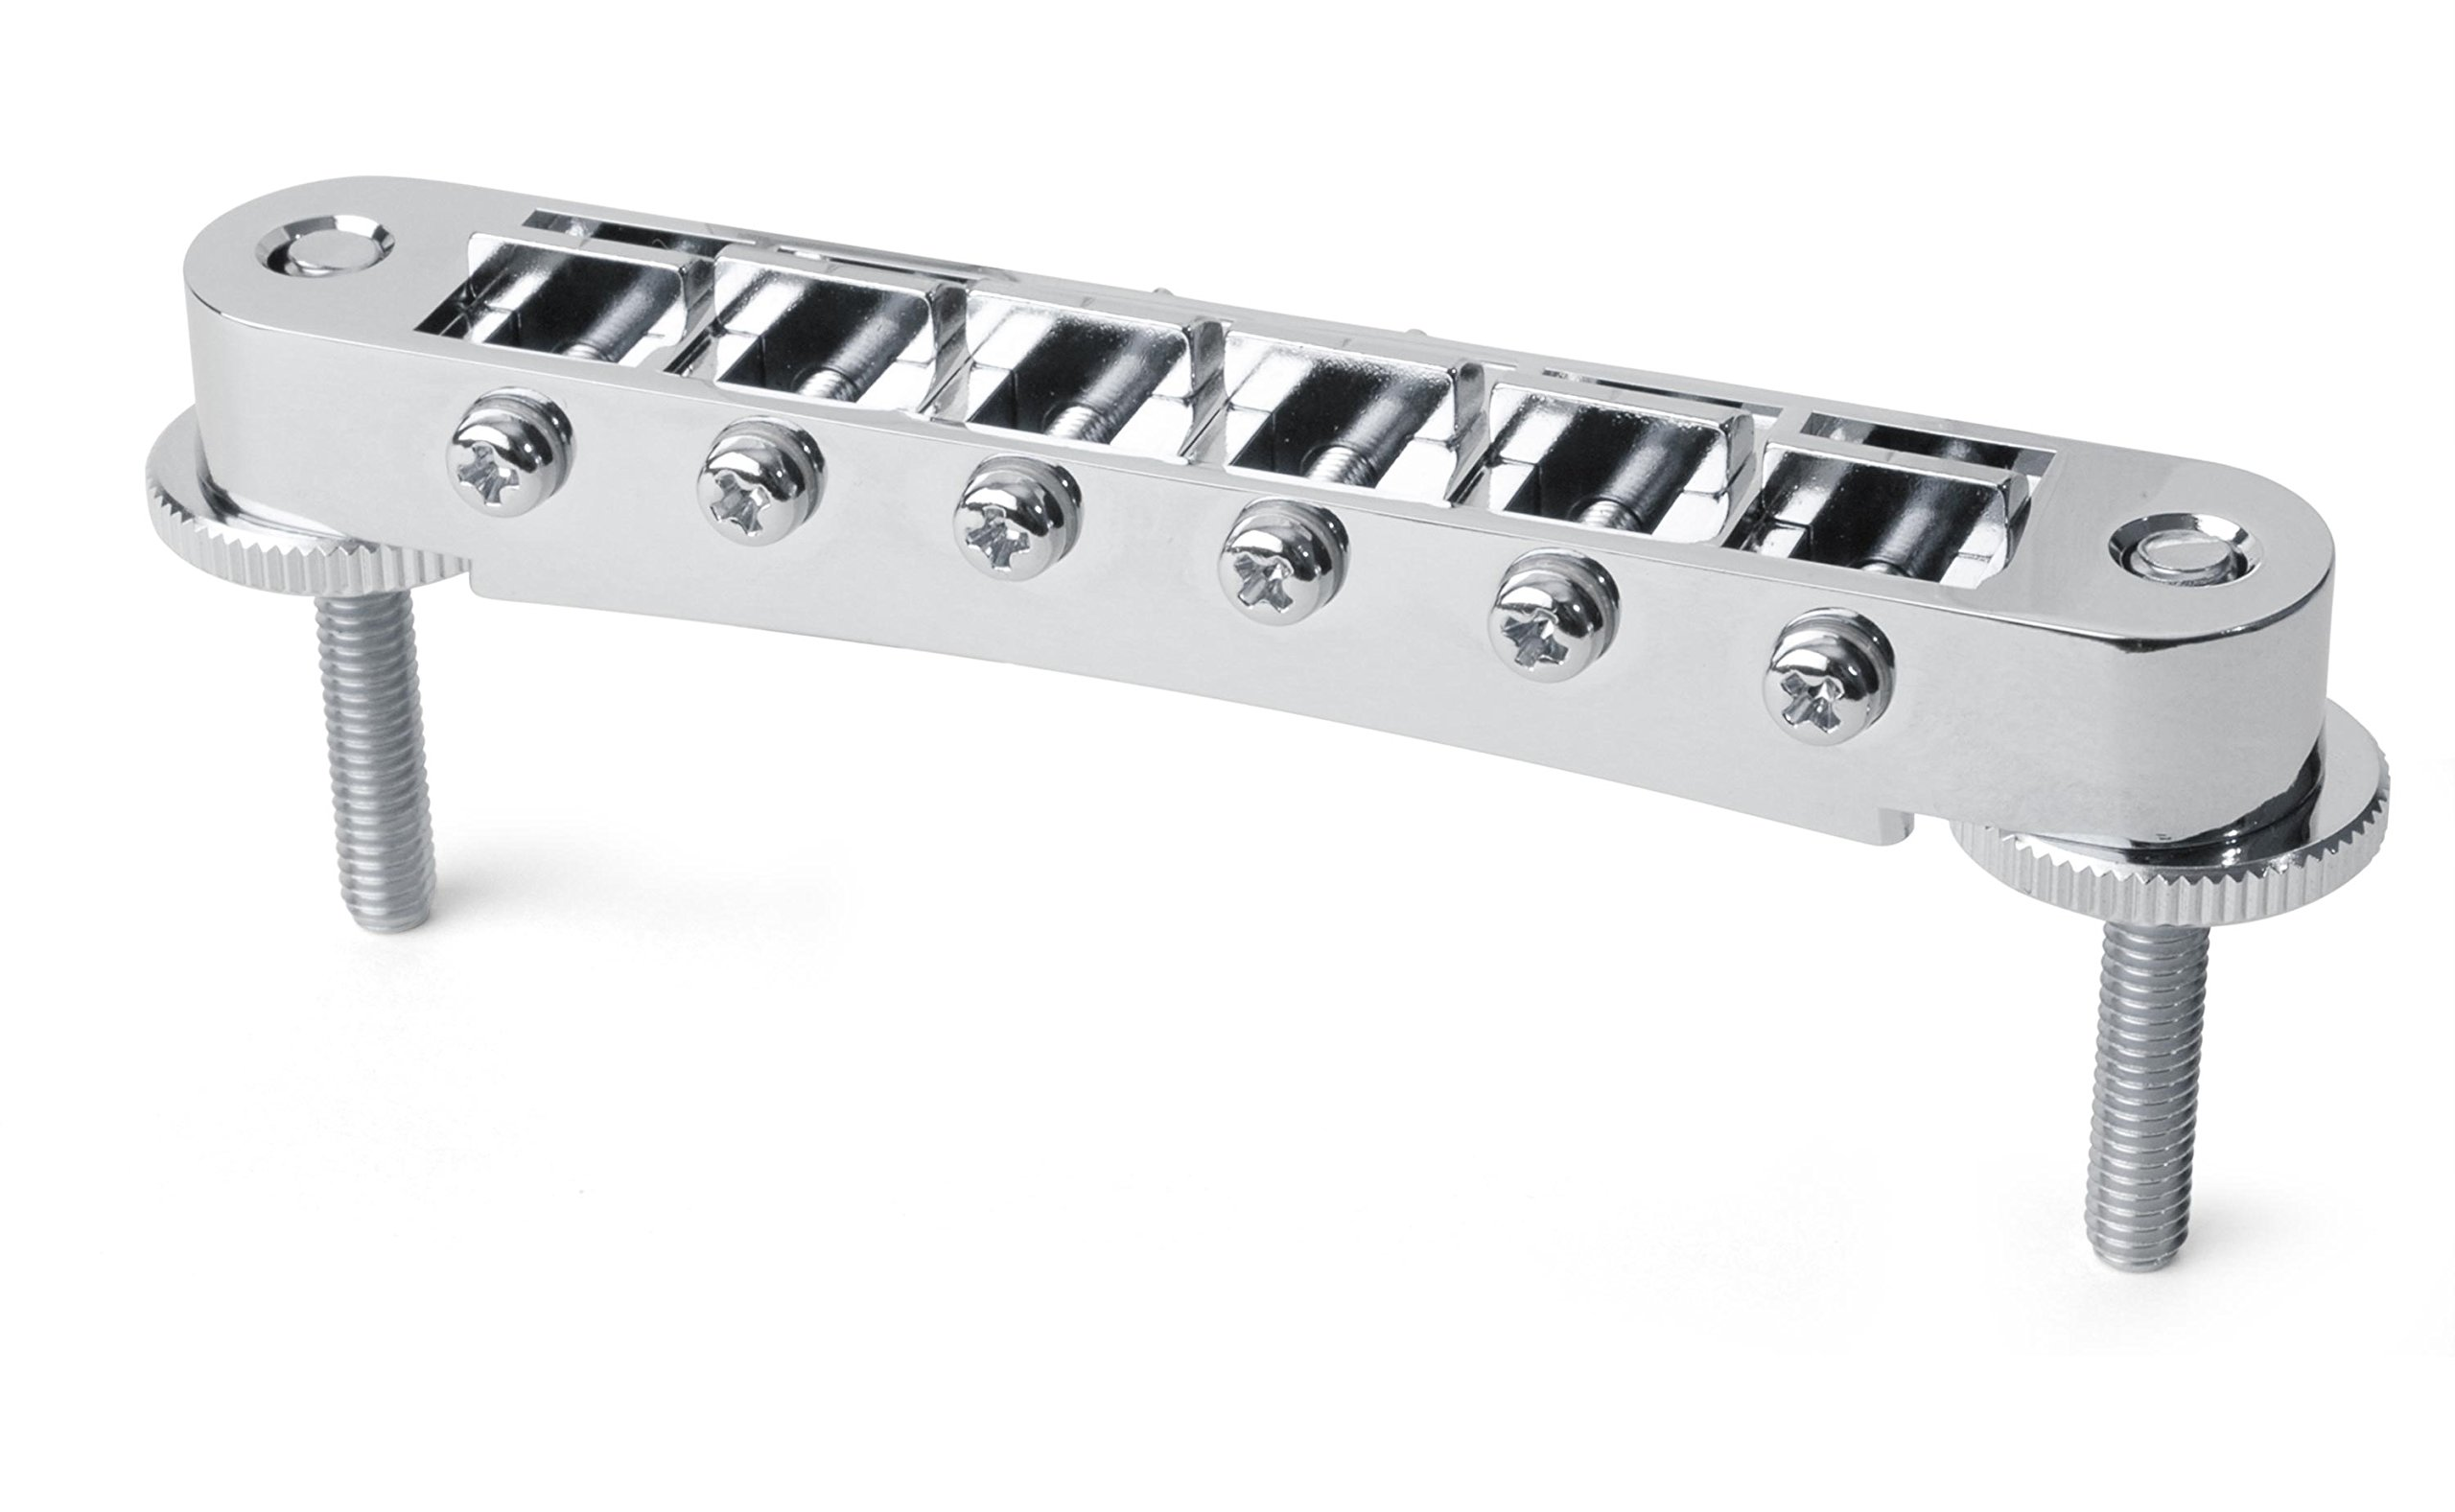 Gotoh Tune-o-matic Bridge with Standard Posts, Chrome by Gotoh (Image #1)